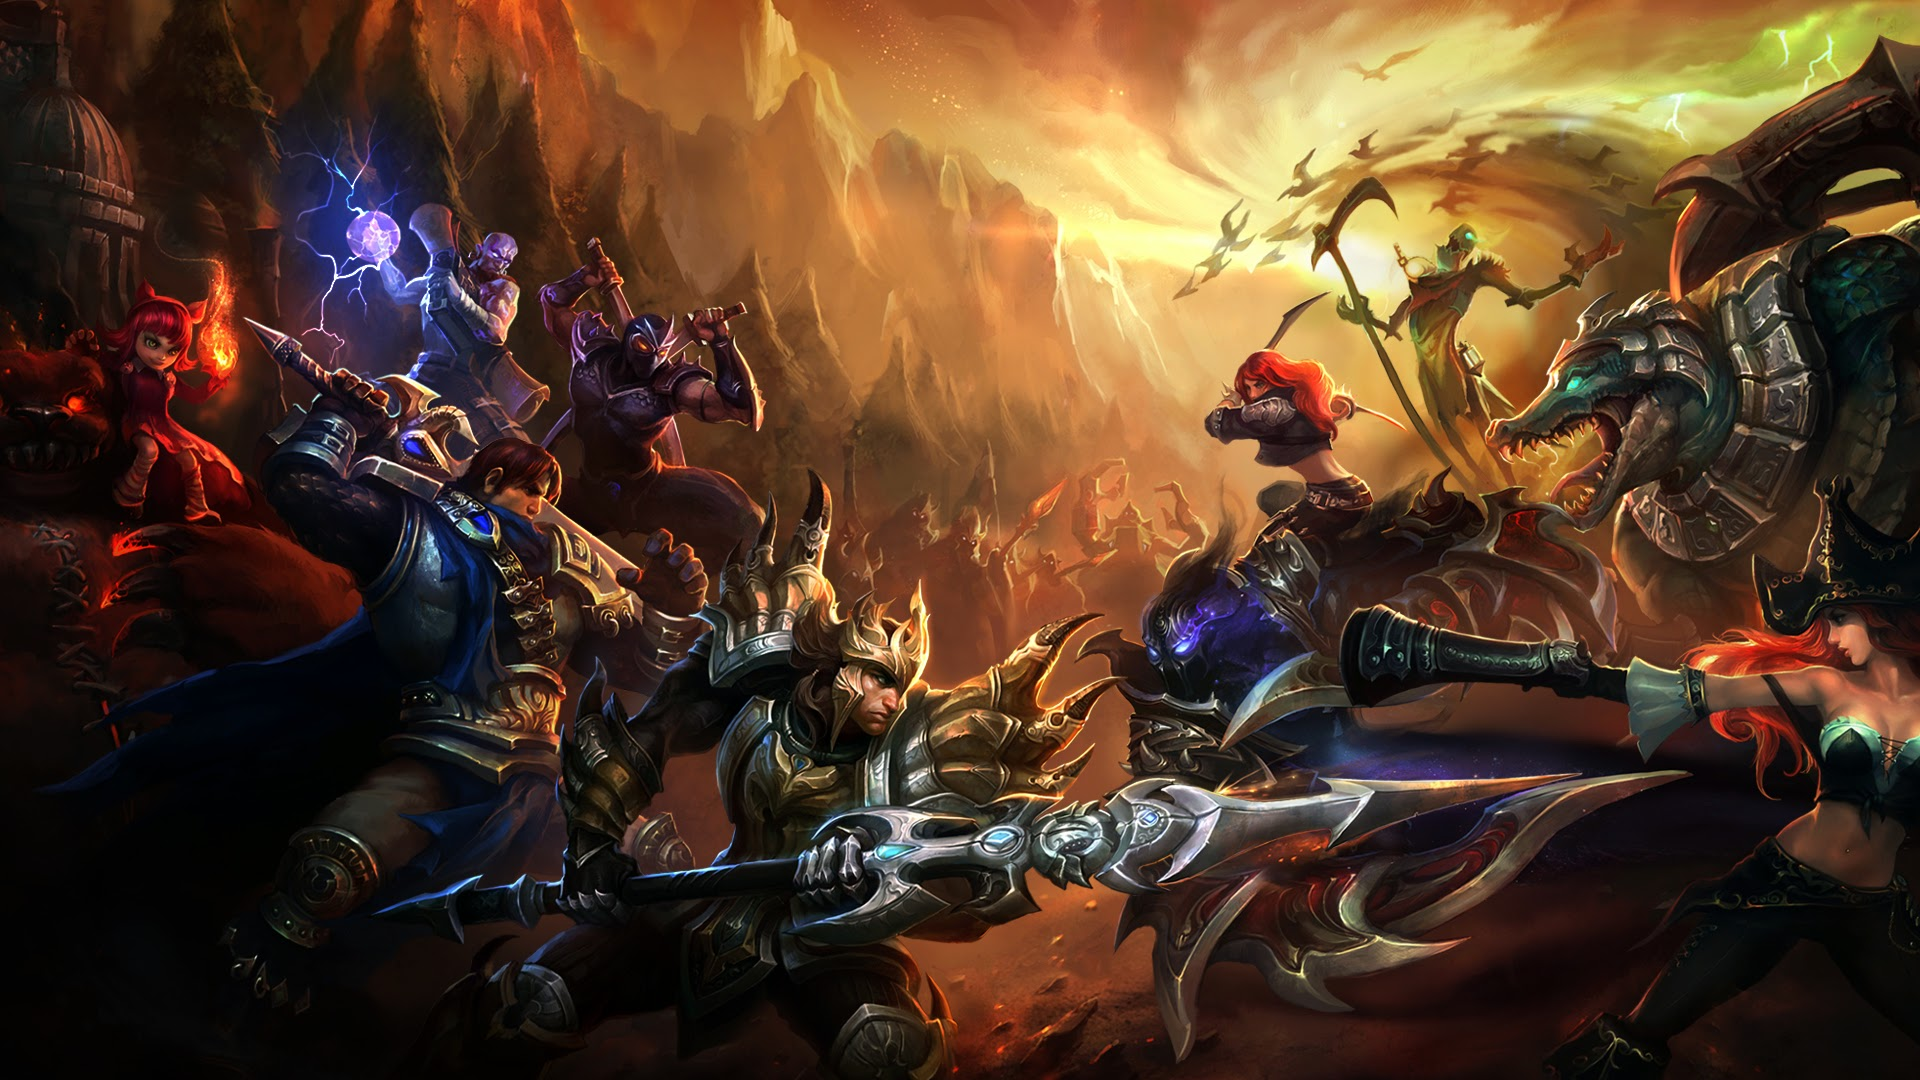 legends champion clash battle fight lol game wallpaper 1920x1080 a097 1920x1080